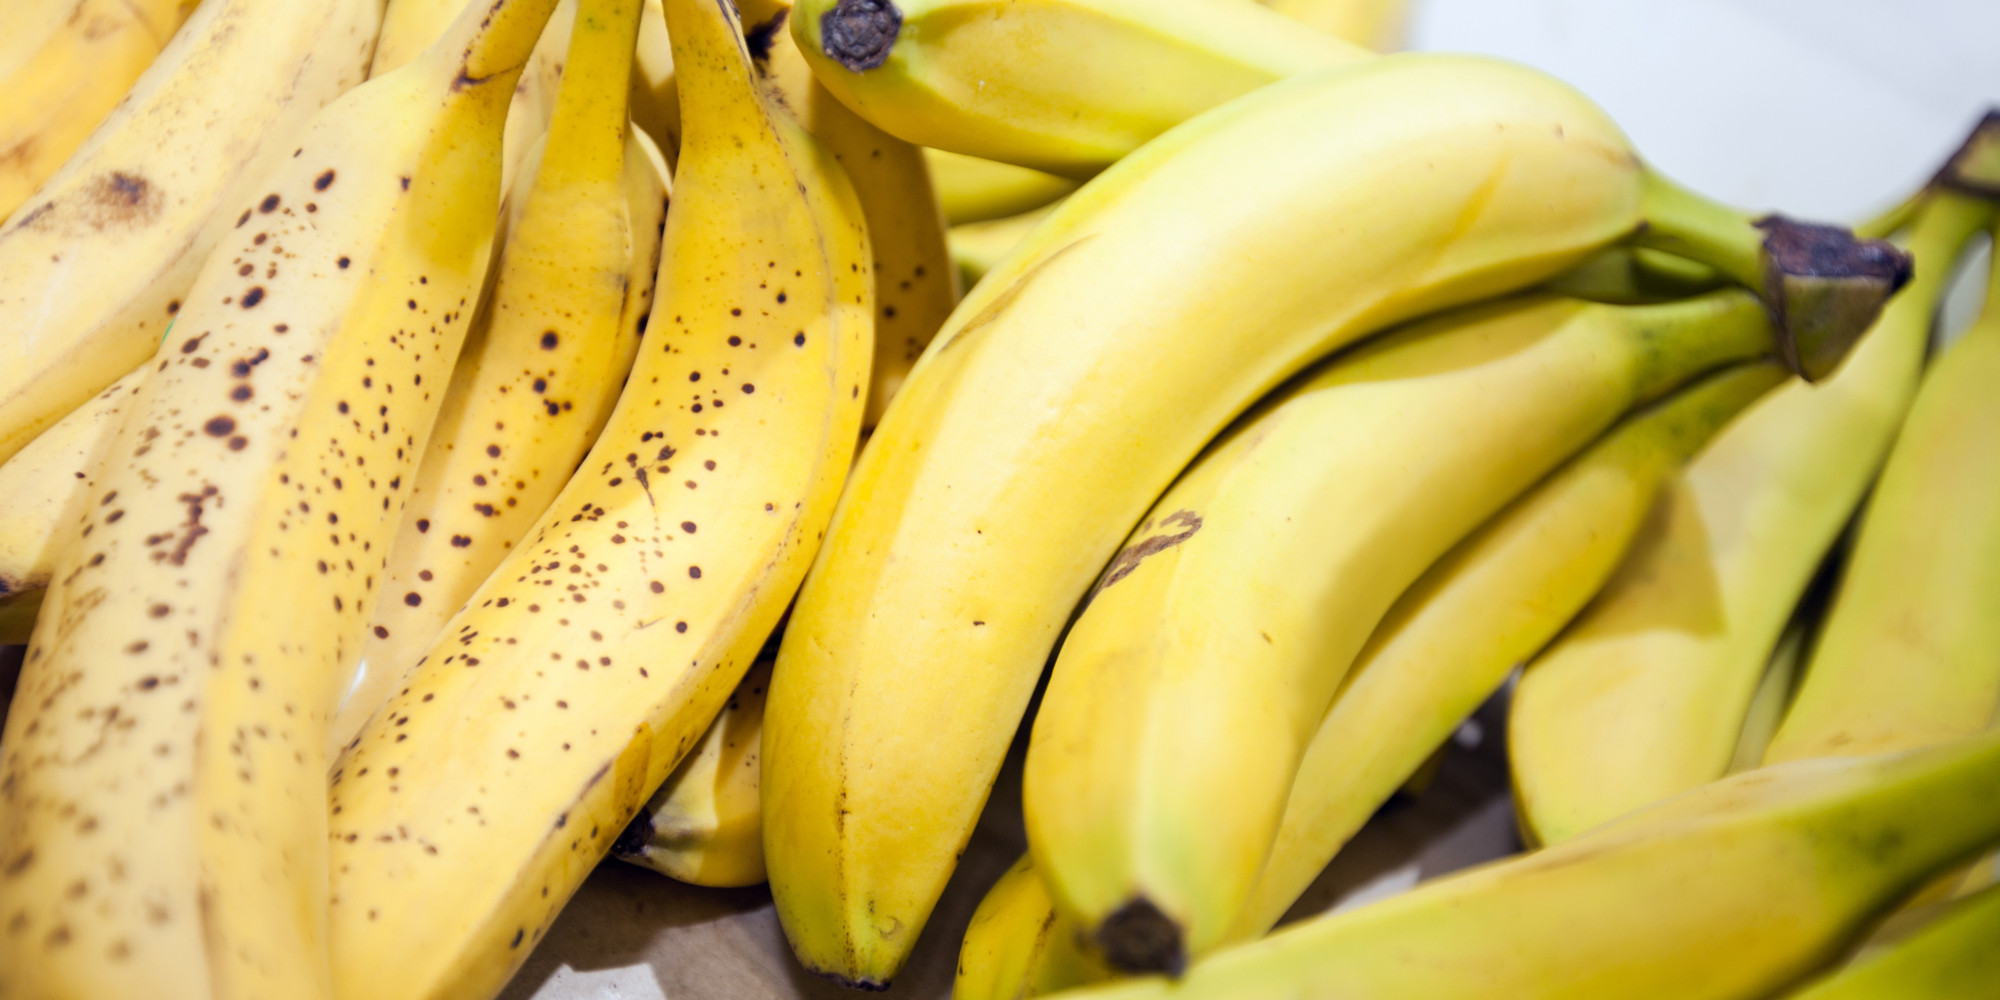 Image result for non organic bananas